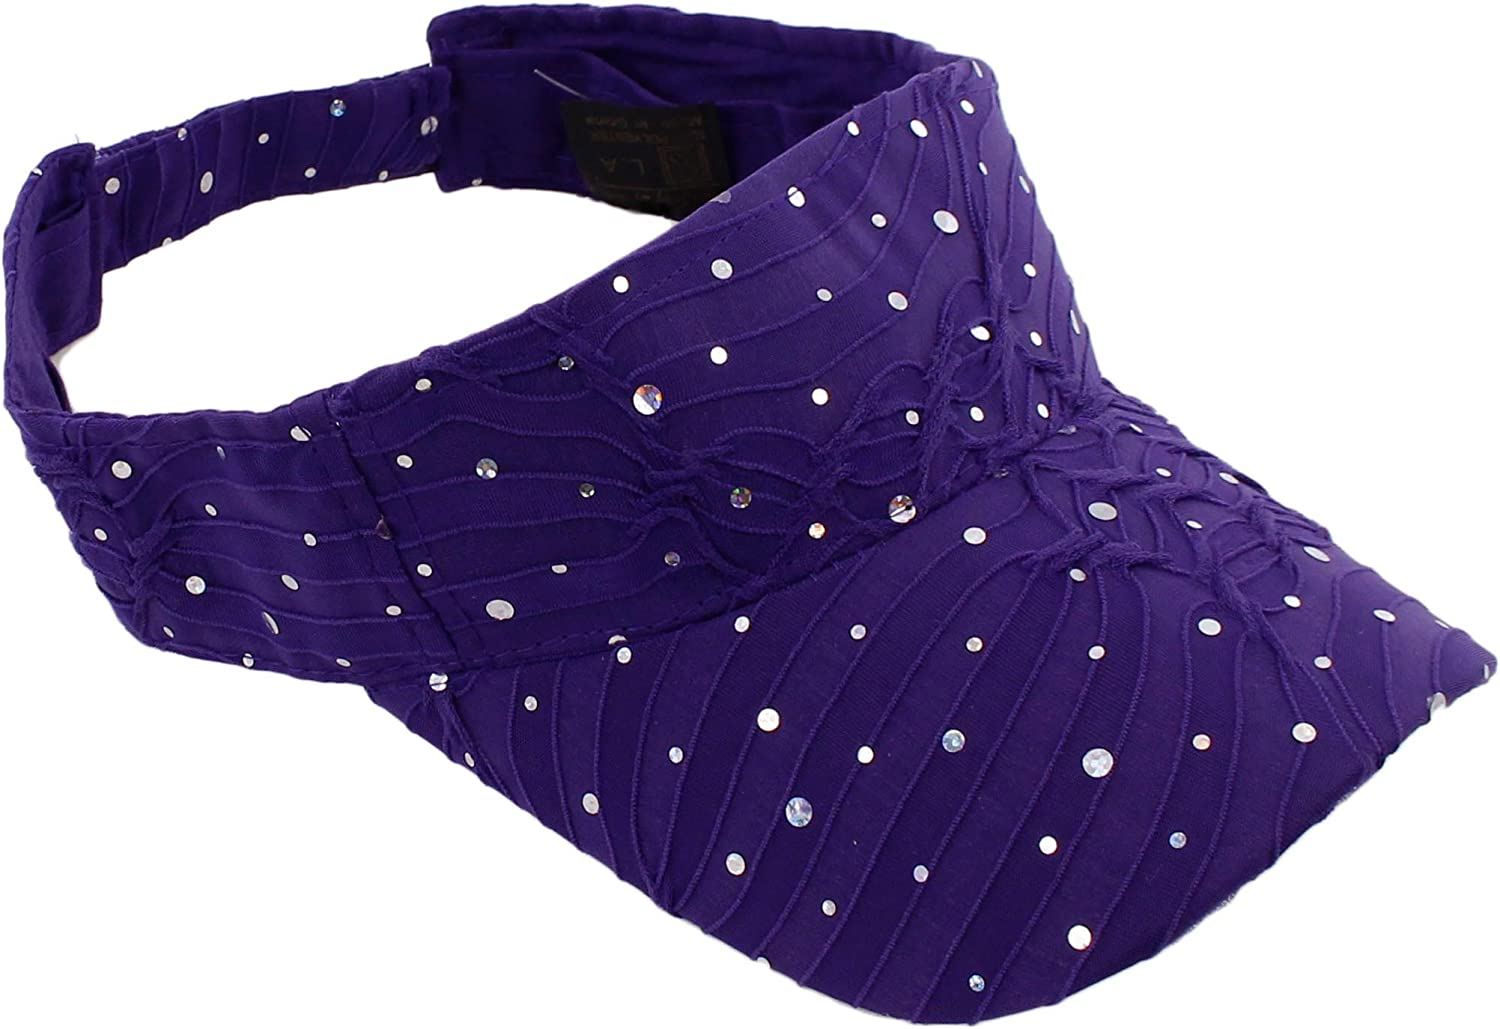 Greatlookz Fashion Glitter Sequin Visor with Flowers for Ladies